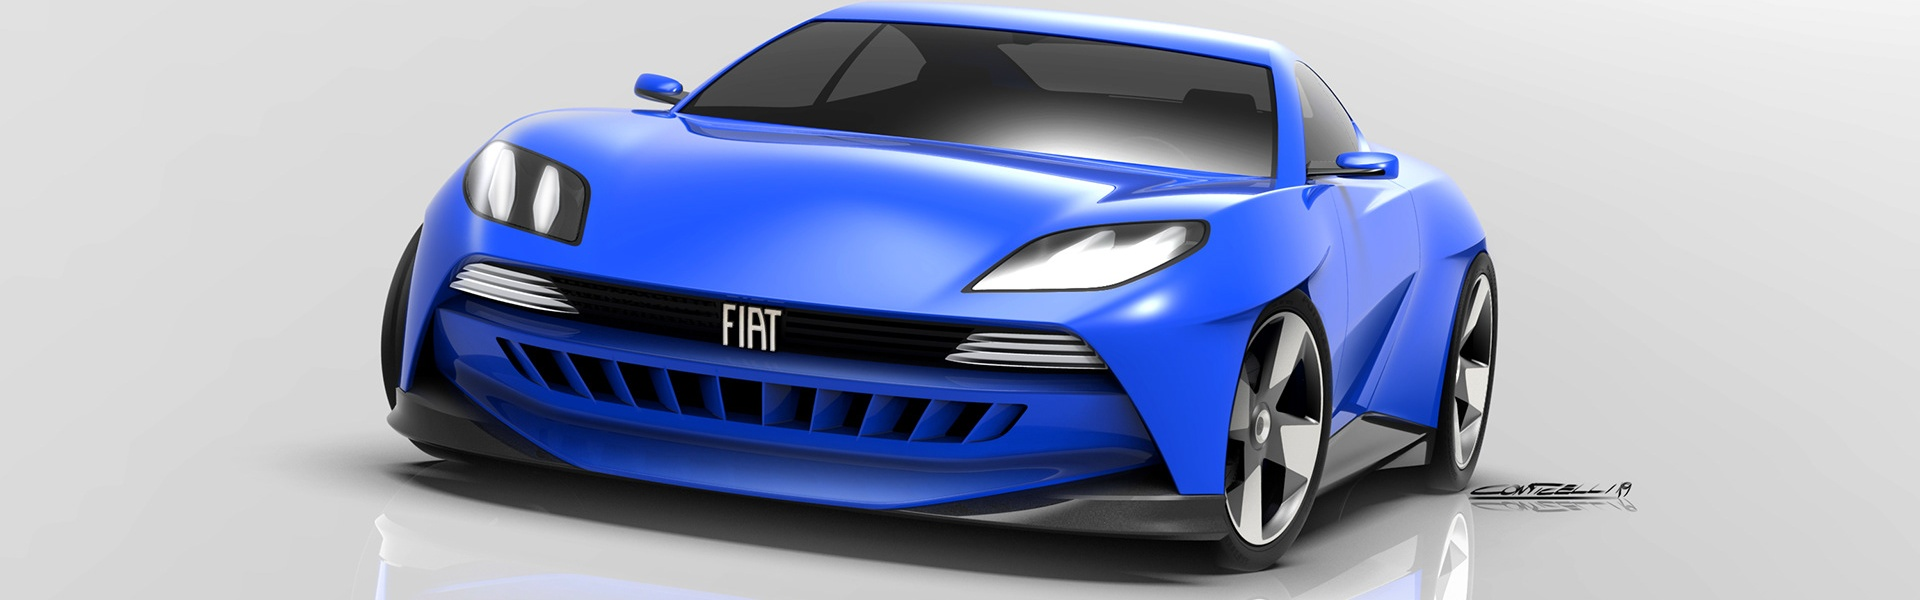 Fiat-Coupe-Tribute-renderings-by-Gaspare-Conticelli-9.jpg